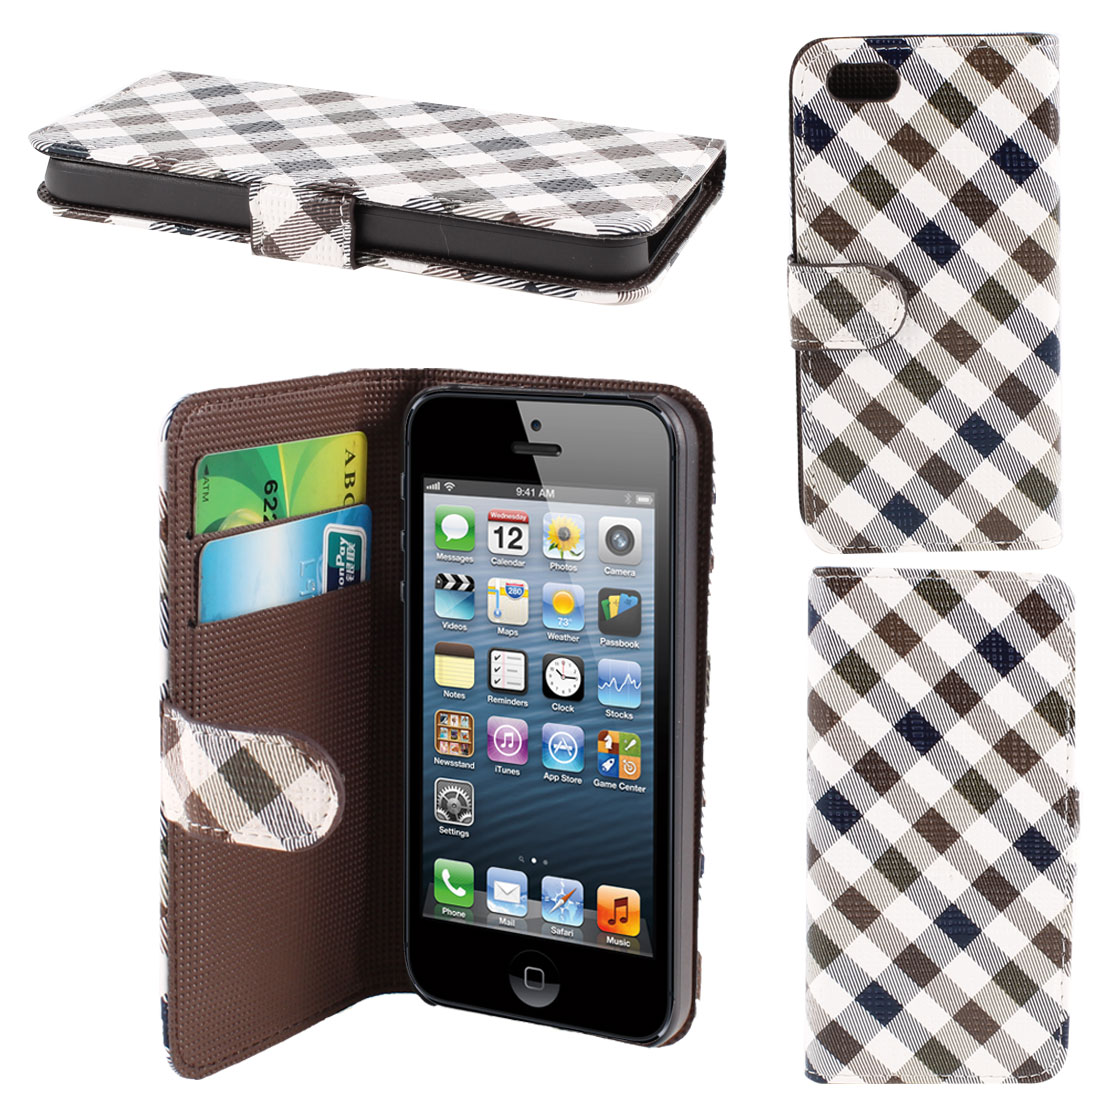 Colors Check Print PU Leather Card Holder Flip Case Cover for iPhone 5 5G 5th